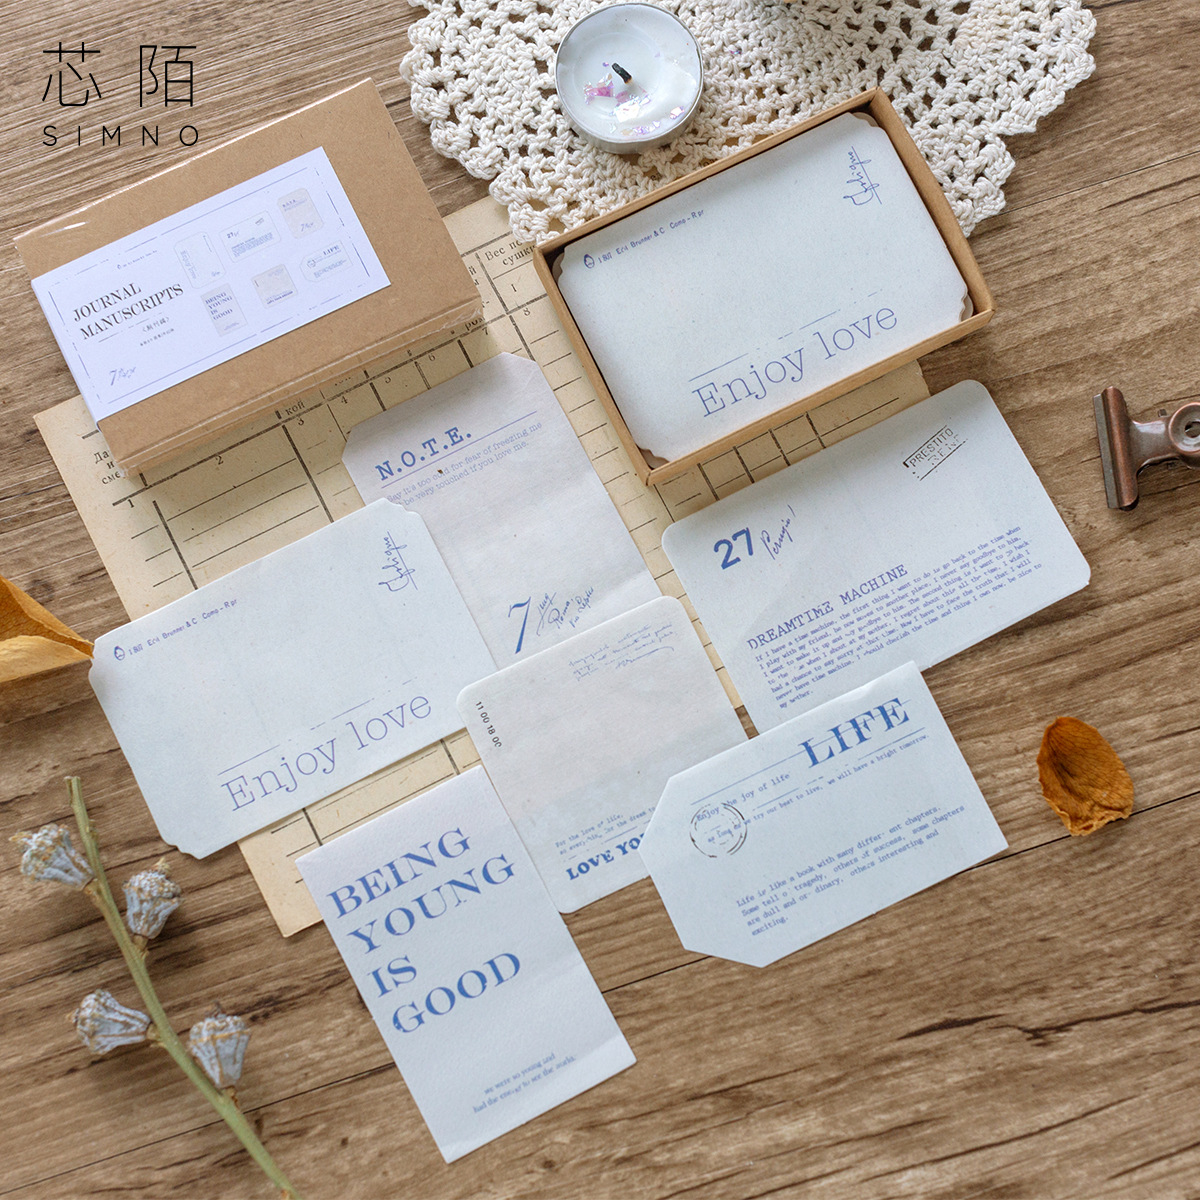 60 Pcs/Box Vintage Travel Bill Tag Paper Sticky Notes Memo Pad Diary Flakes Scrapbook Decorative Memo Bullet Journal Stationery